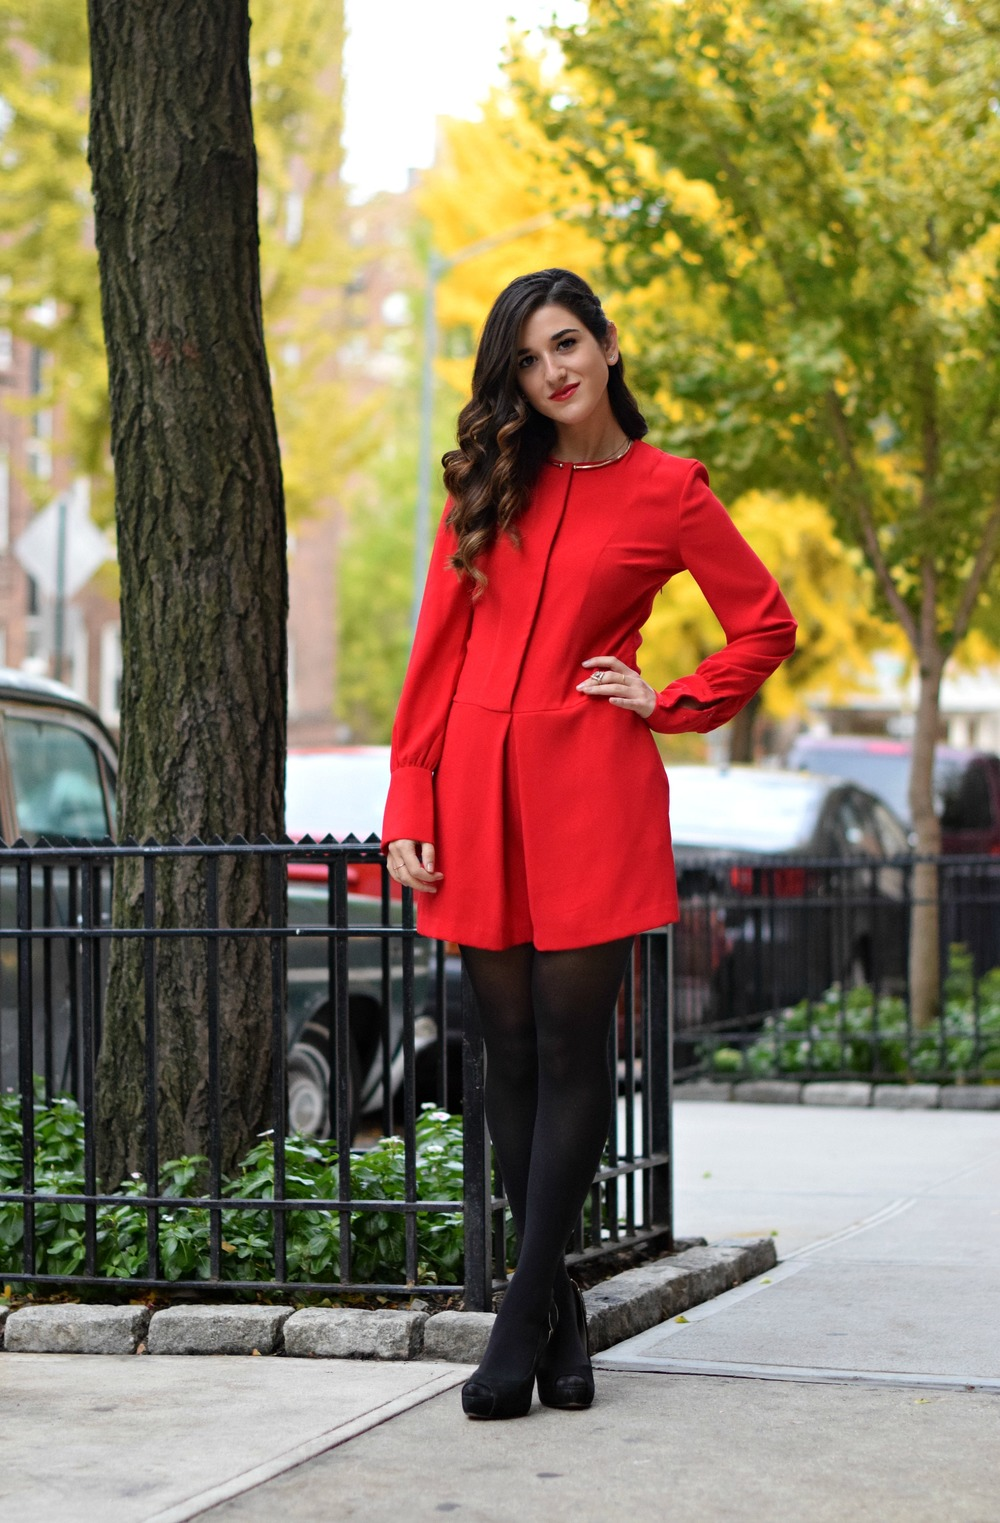 Red Romper Black Tights Louboutins & Love Fashion Blog Esther Santer NYC Street Style Blogger Winter Fall Look Shoes Heels Zara Gold Collar Necklace Braid Hair Inspo Outfit OOTD Photoshoot NYC Girl Women Model Stiletto Wear Shop Accessories Clothing.jpg